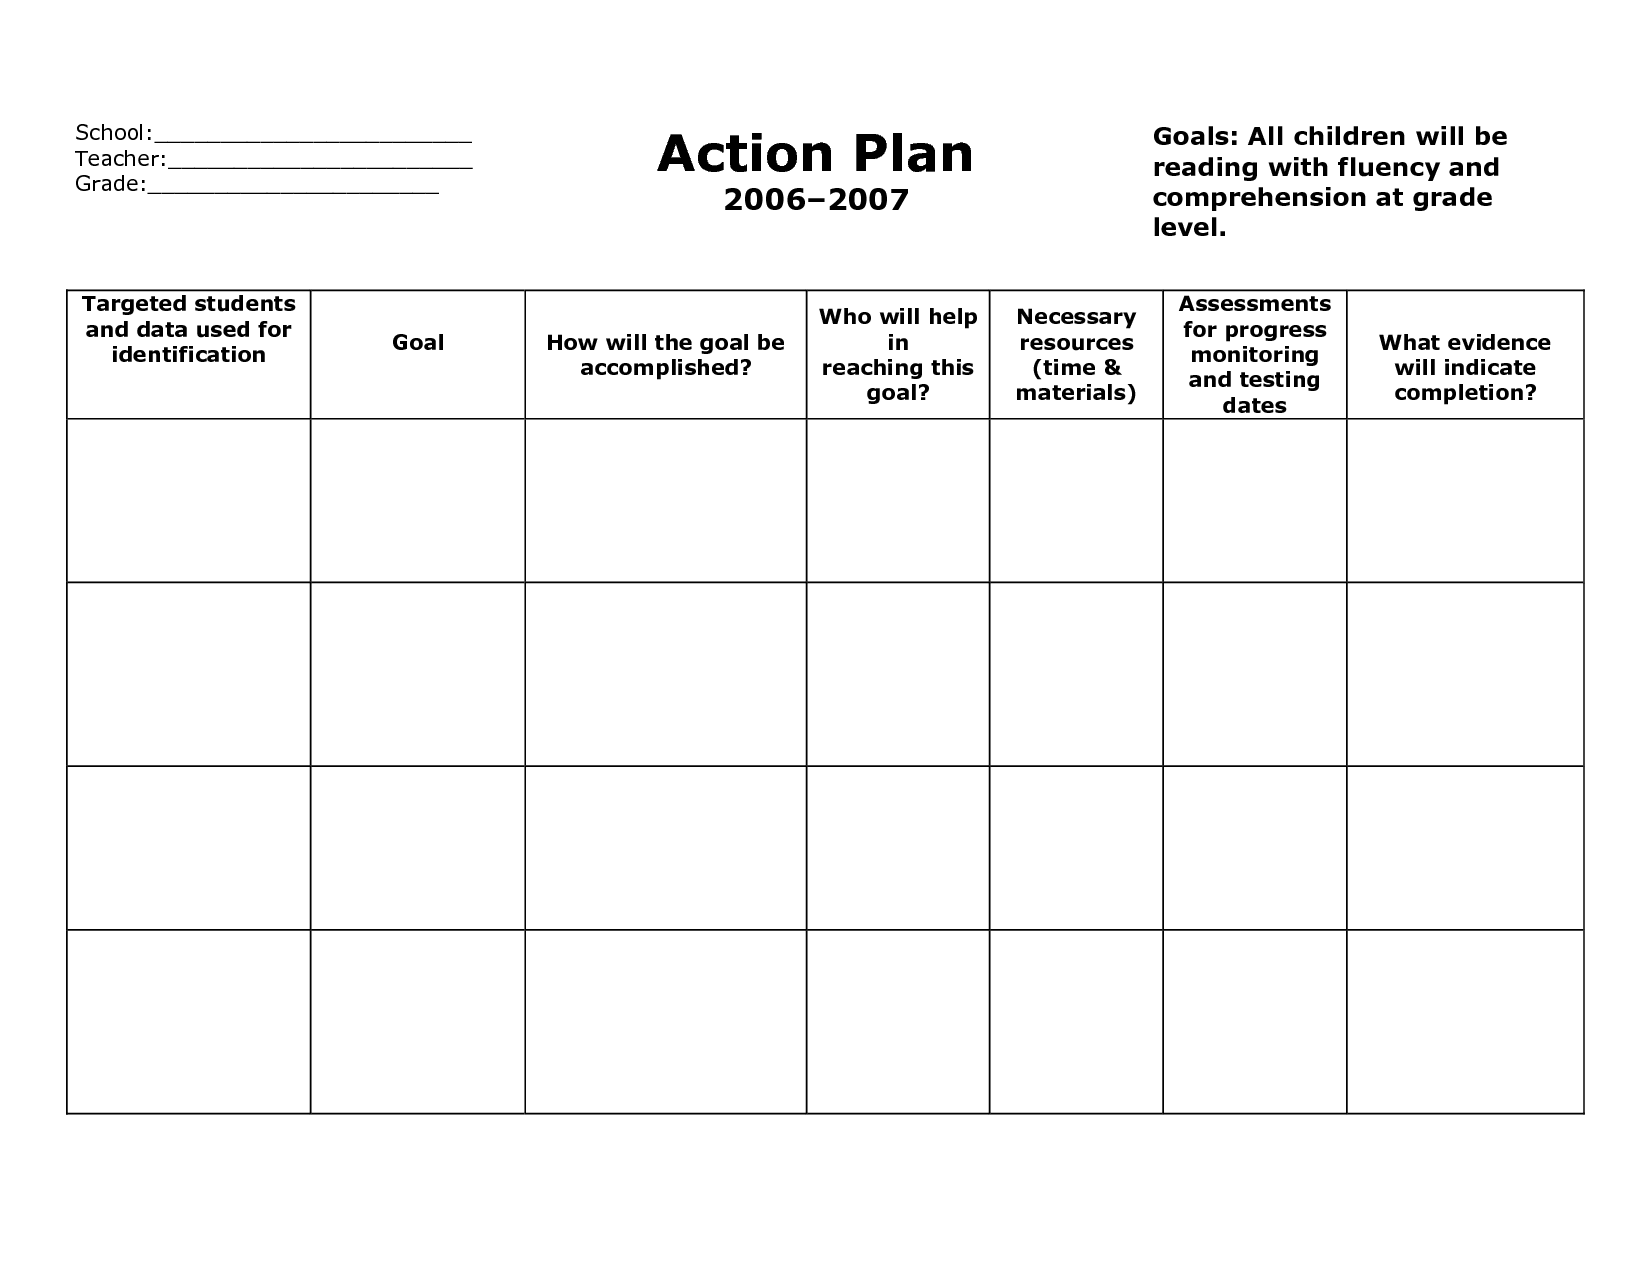 Action plan template planning action and accountability for action plan template action plan format v5fclyv5 pronofoot35fo Choice Image